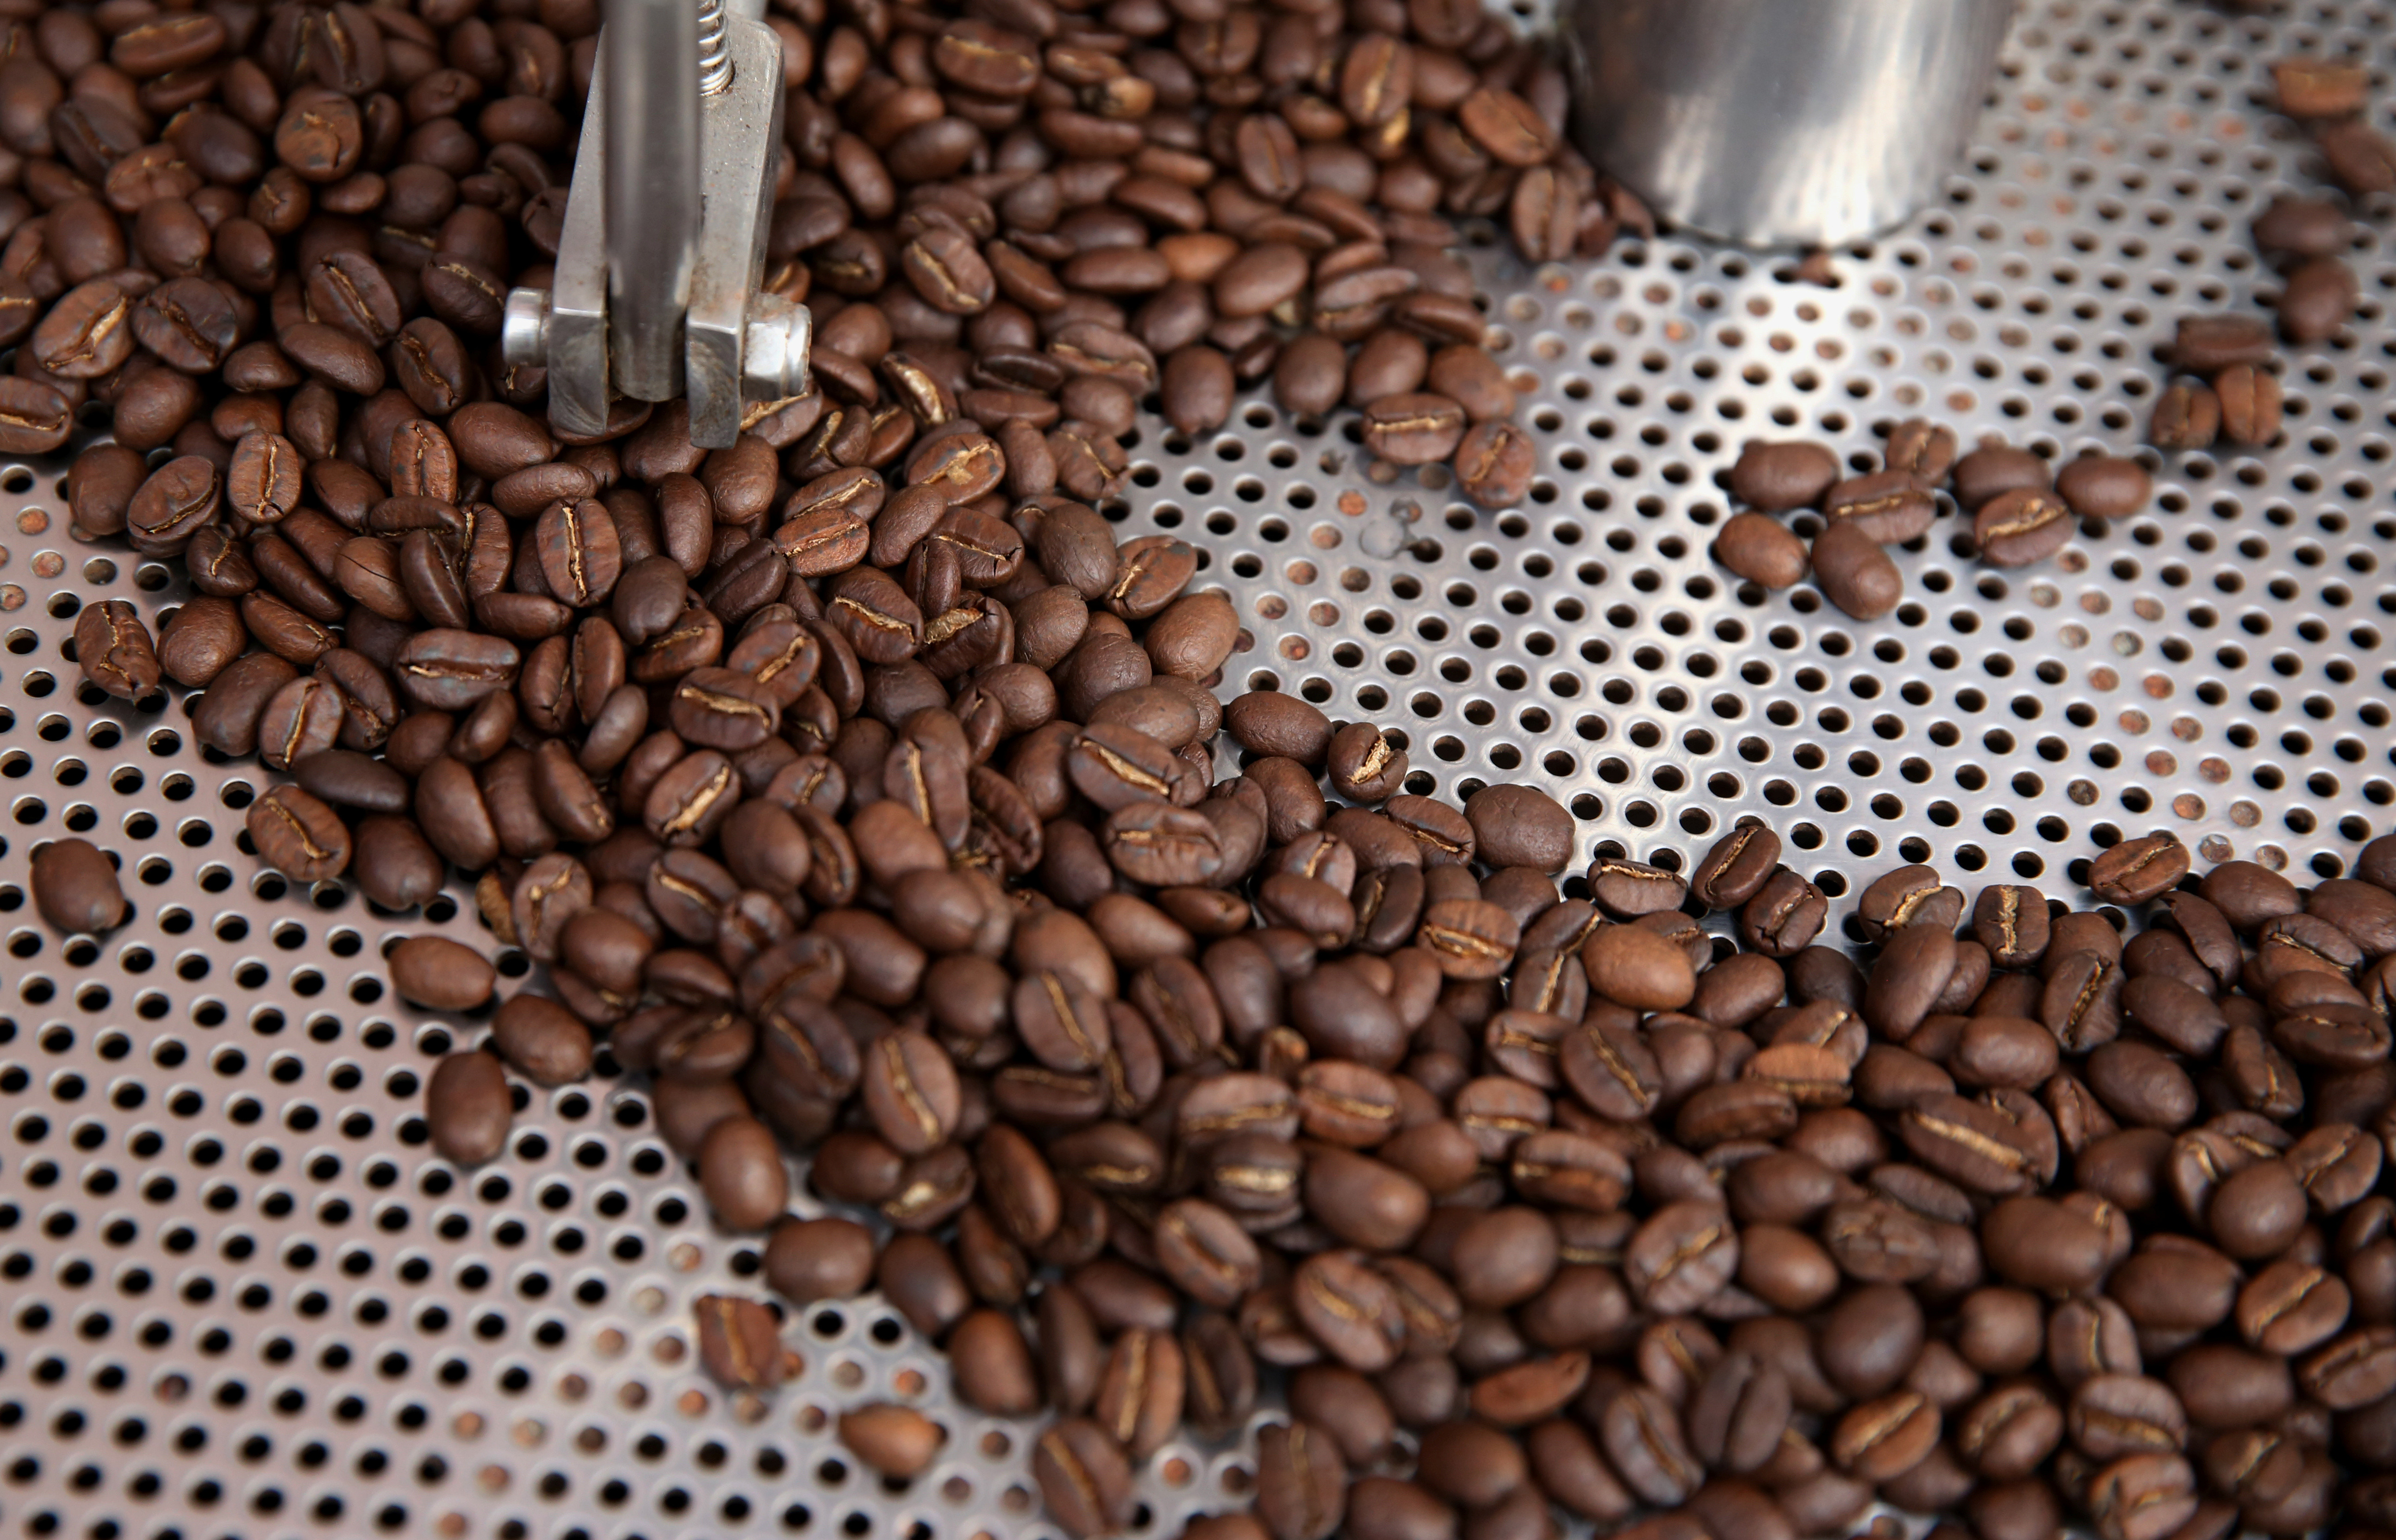 Coffee beans are seen in a roaster at a stand at the Coffee Fair in Lima, Peru, August 25, 2017.